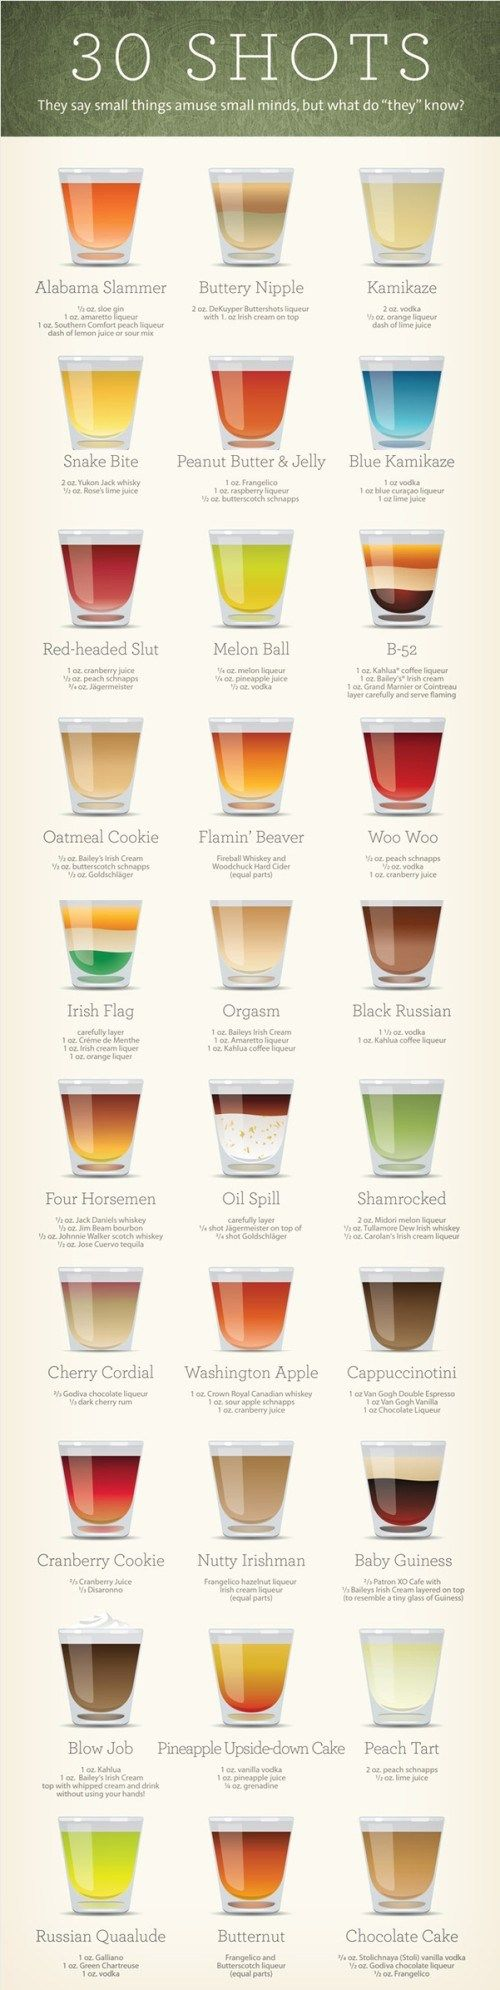 cocktail // drink - Seriously, there is a challenge to be accepted here. I'm down!